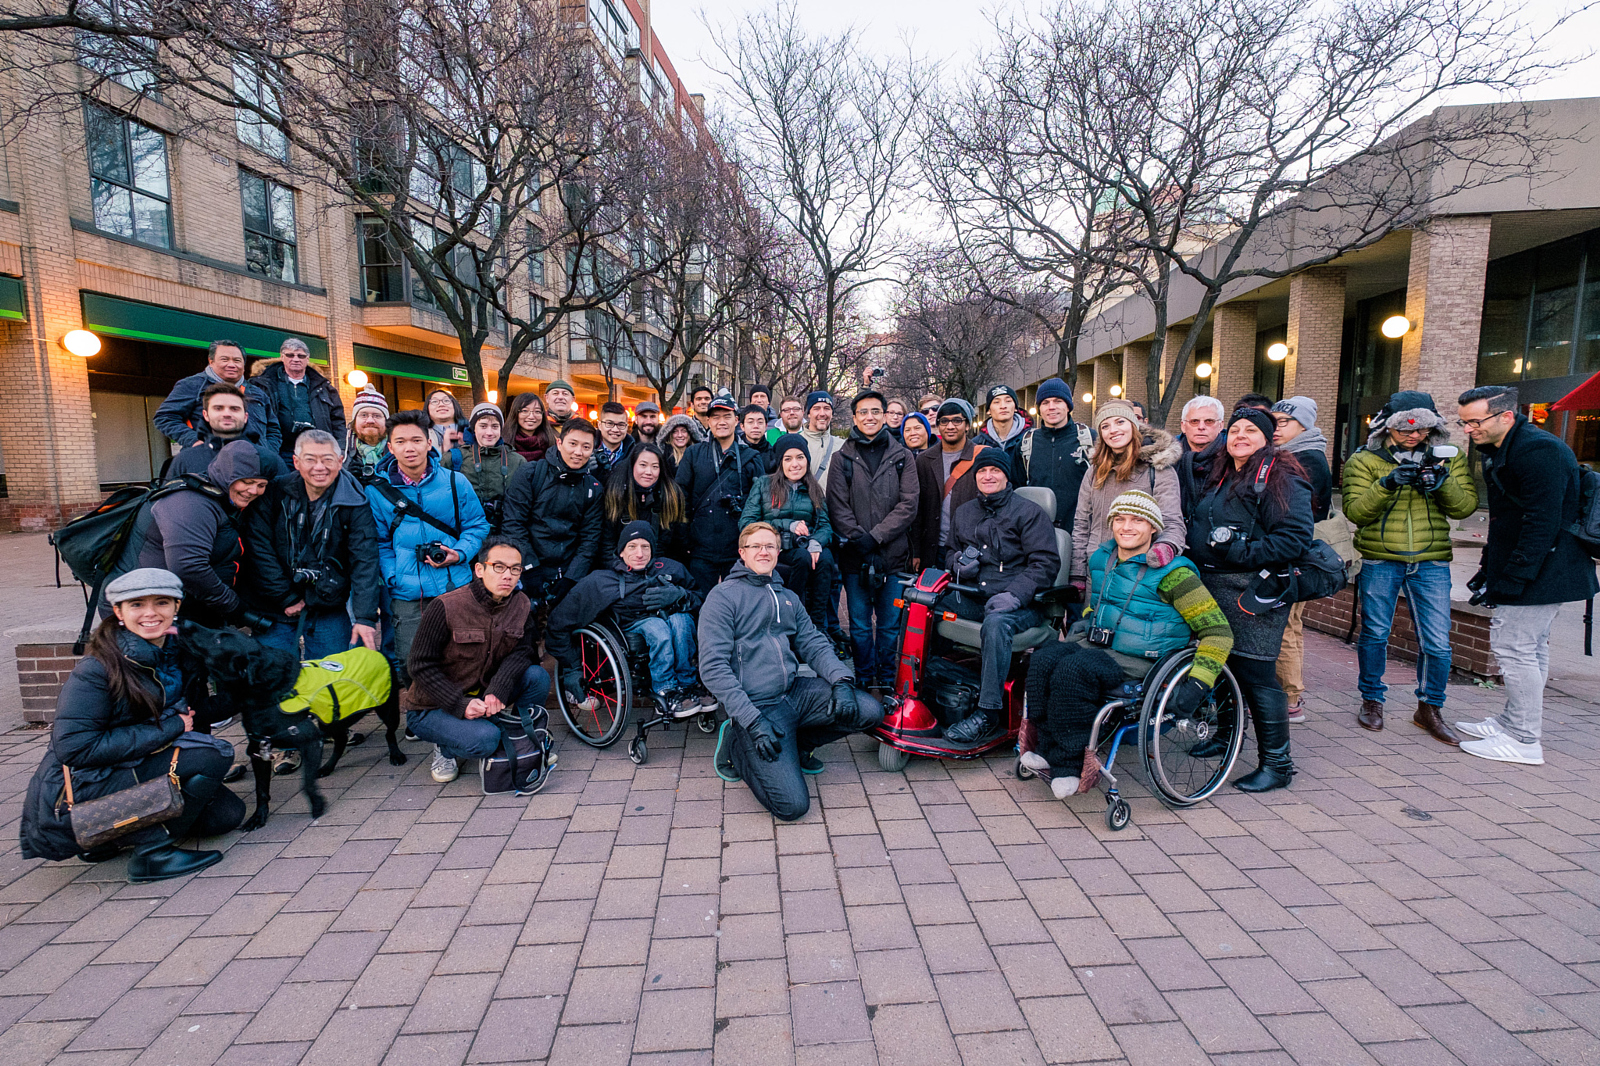 15 Photos from Toronto's First Ever Accessible Photowalk